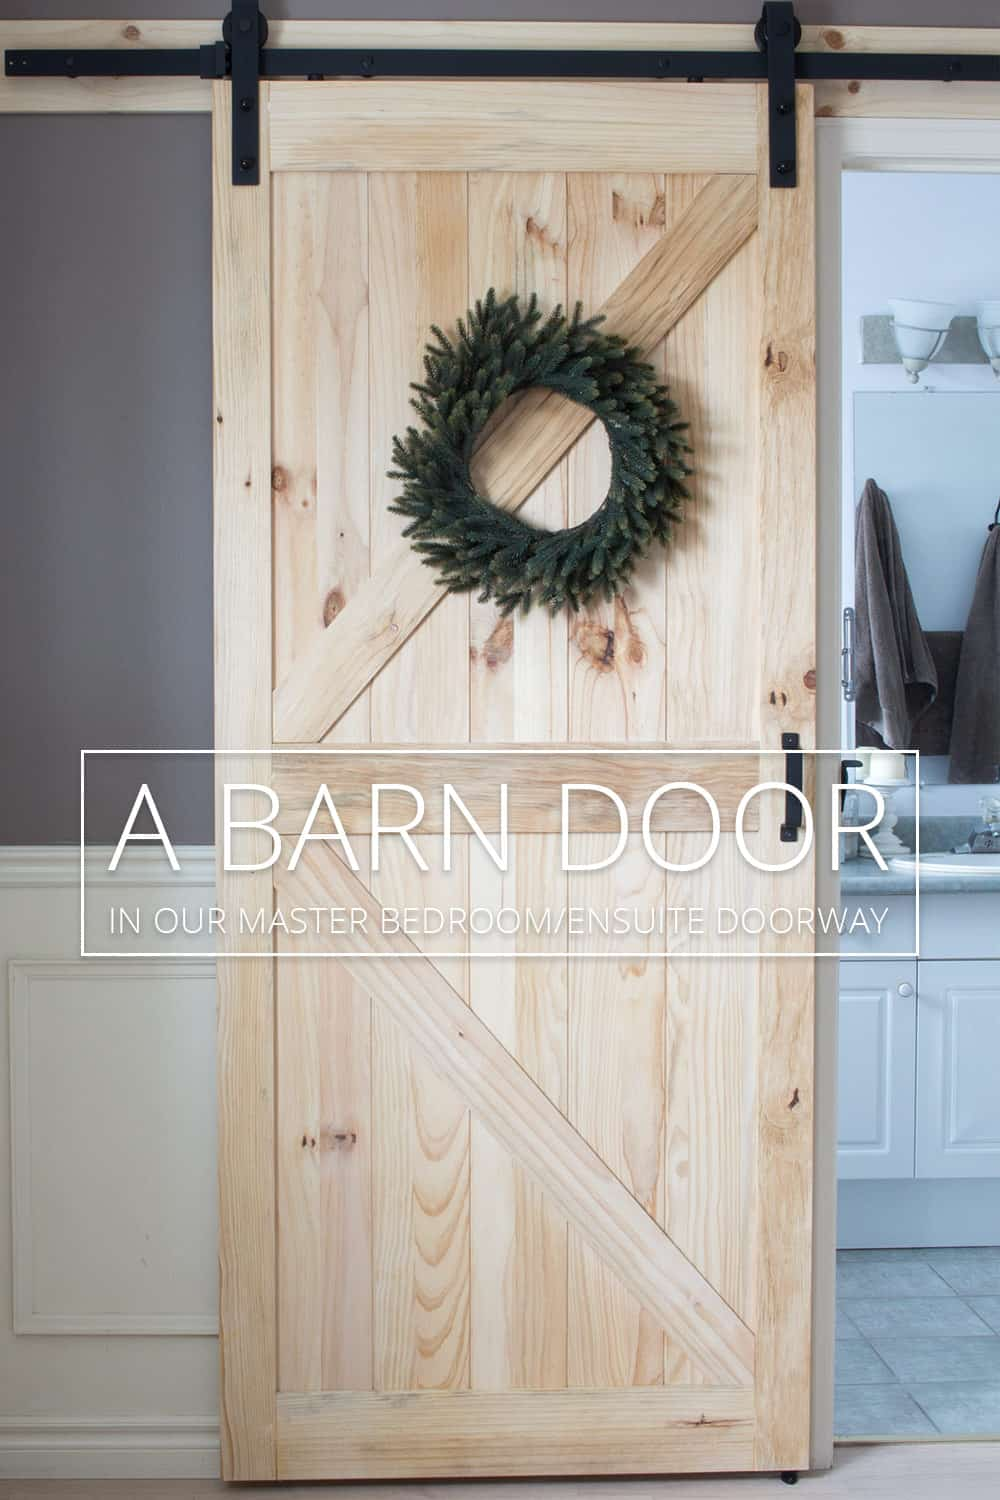 We Finally Have a Barn Door Again - In Our Master Bedroom!